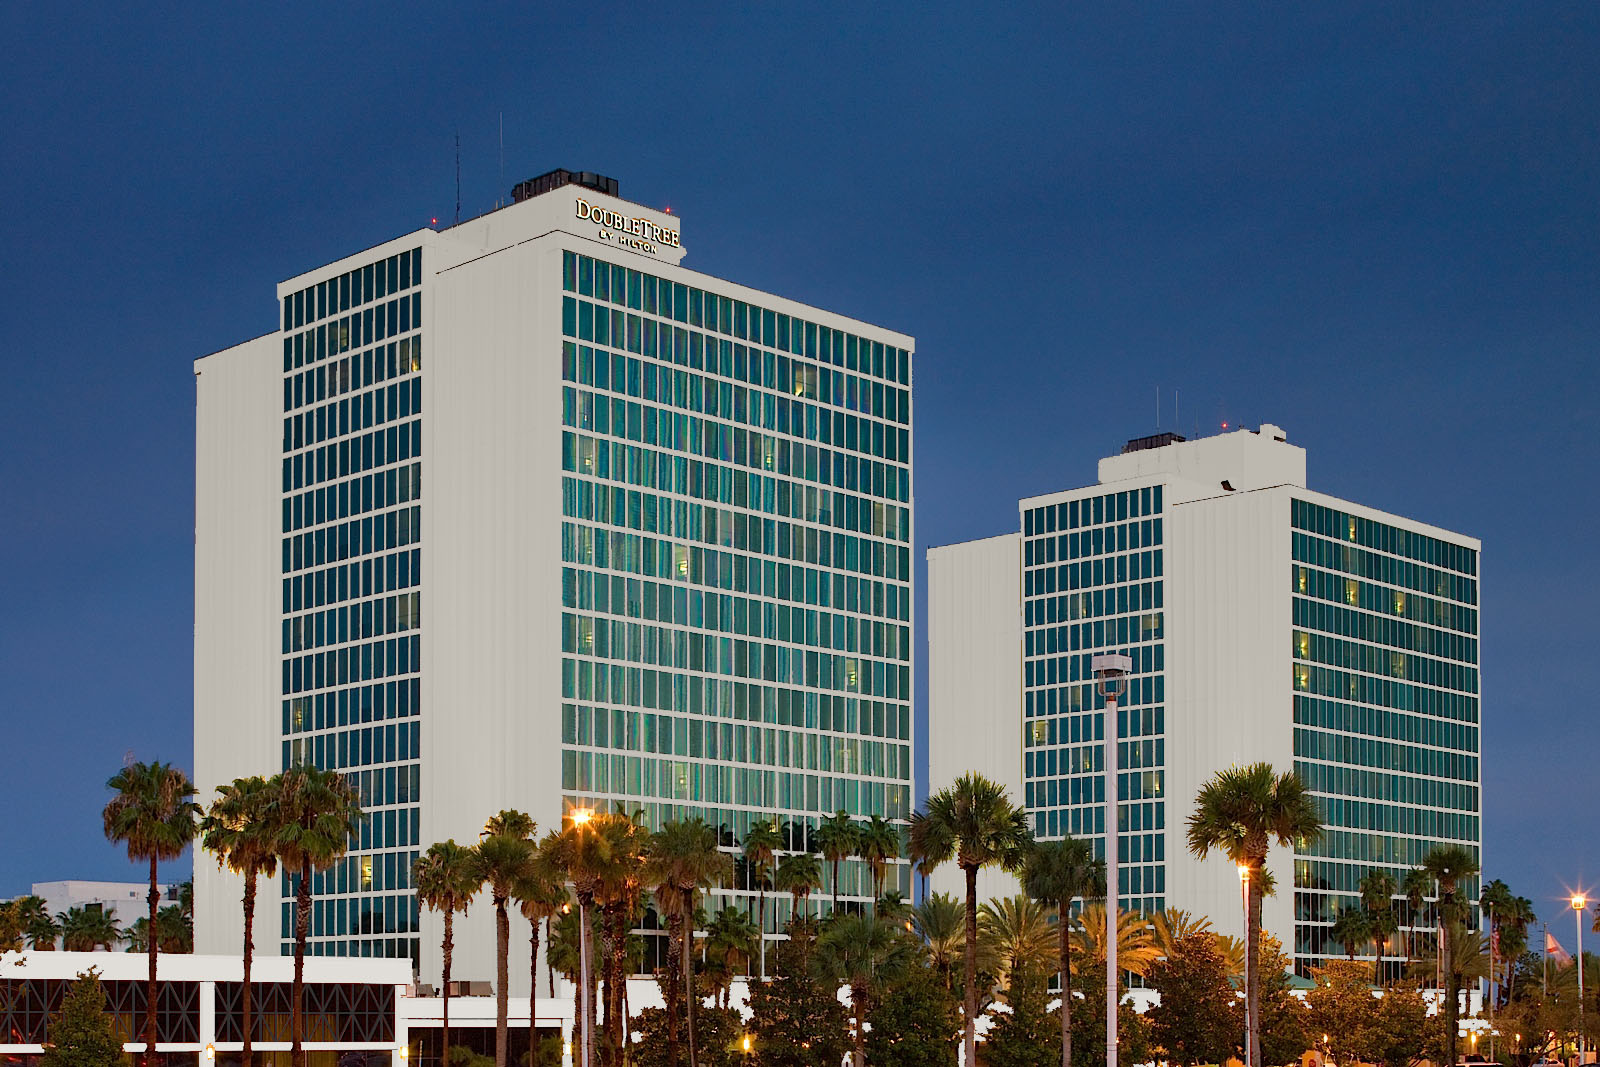 2017 Conference Hotel is the Doubletree by Hilton Hotel at Entrance to Universal Orlando